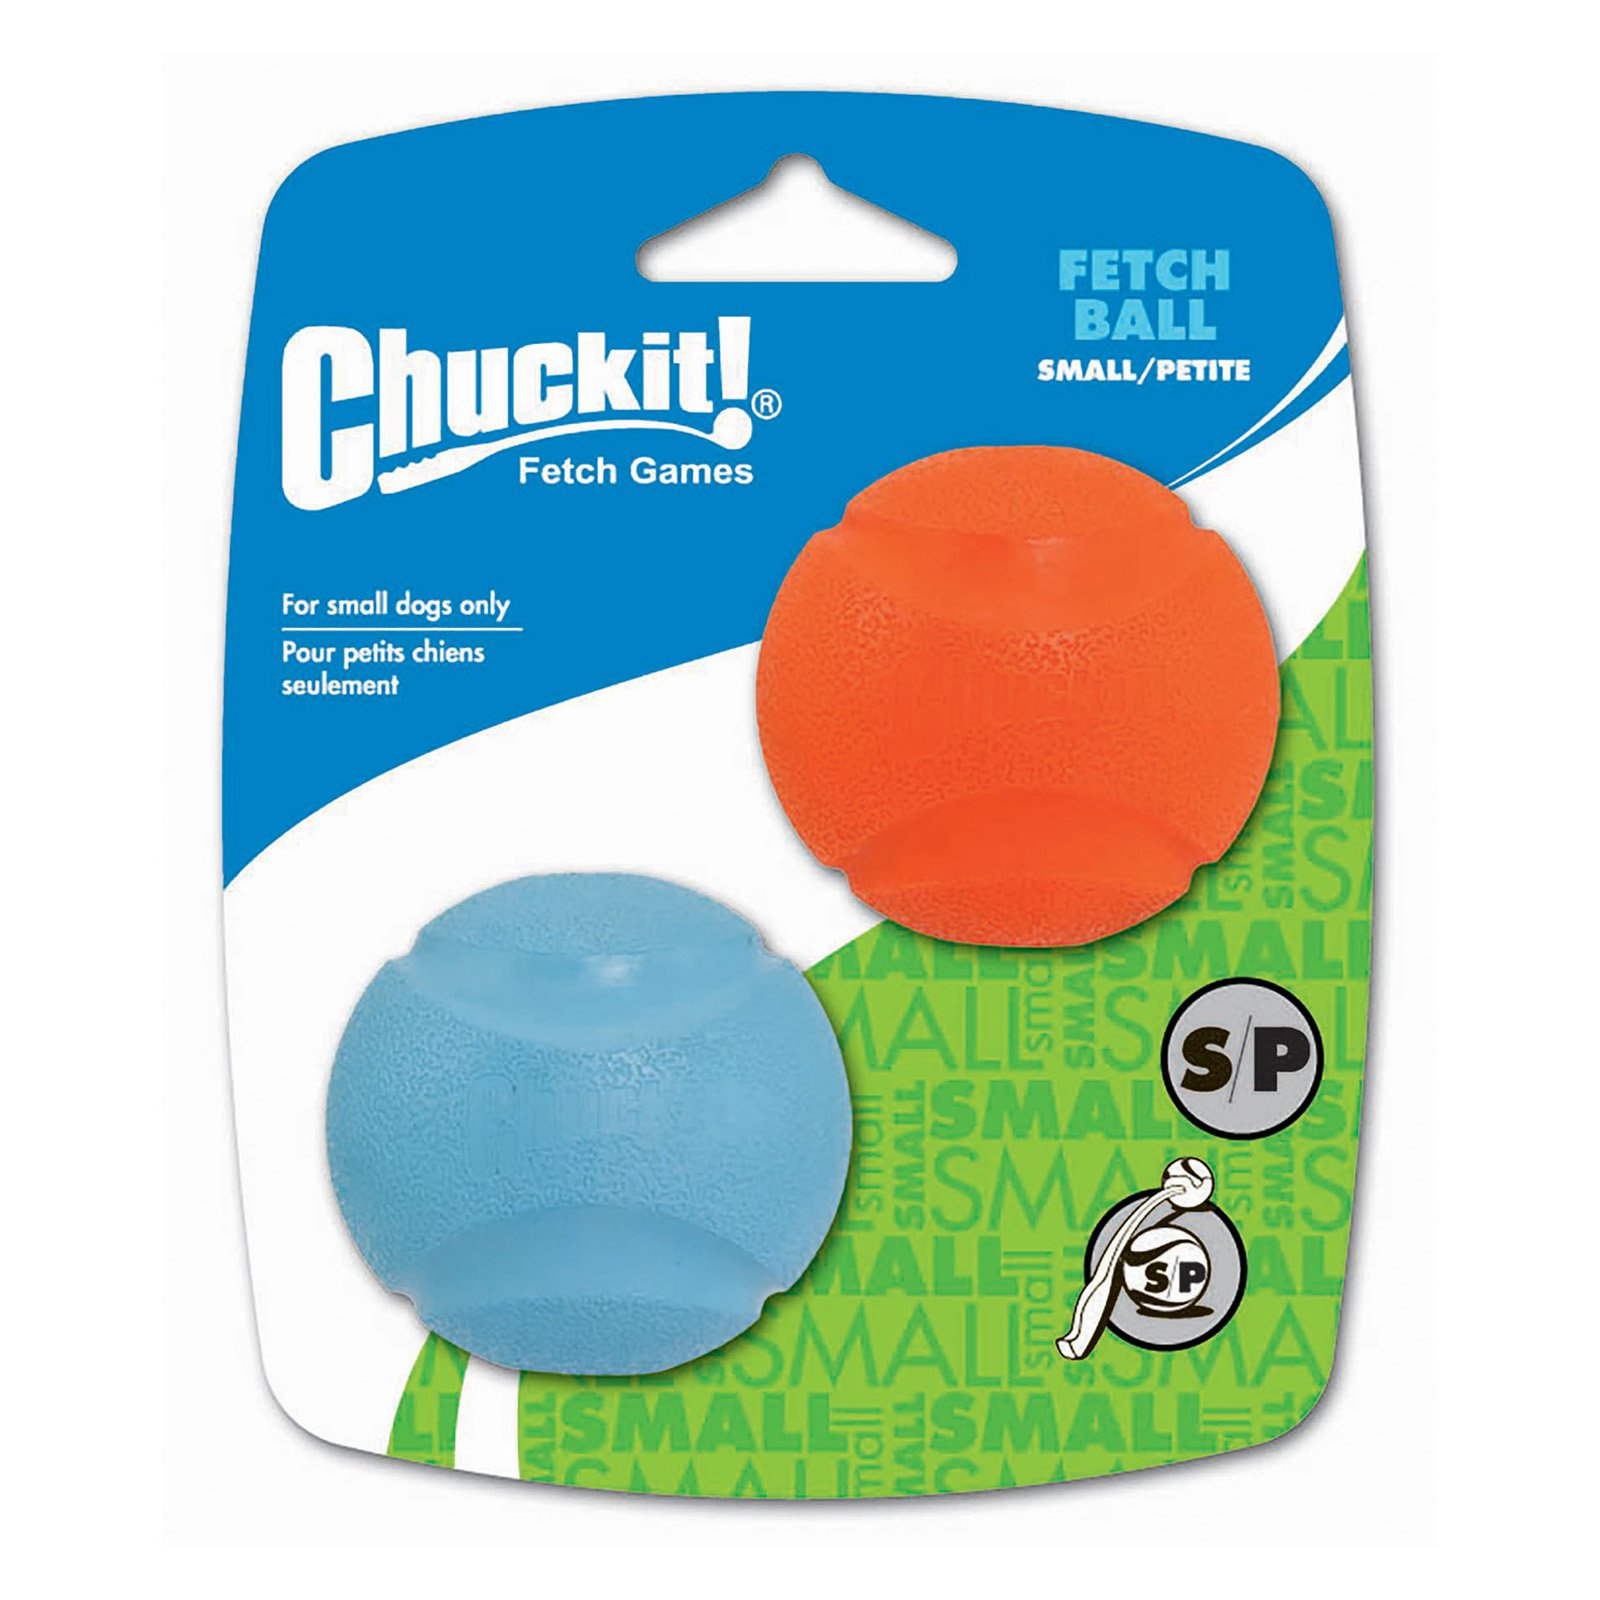 Canine Hardware Chuckit Fetch Ball Small Dog Toy, 2pk by Canine Hardware